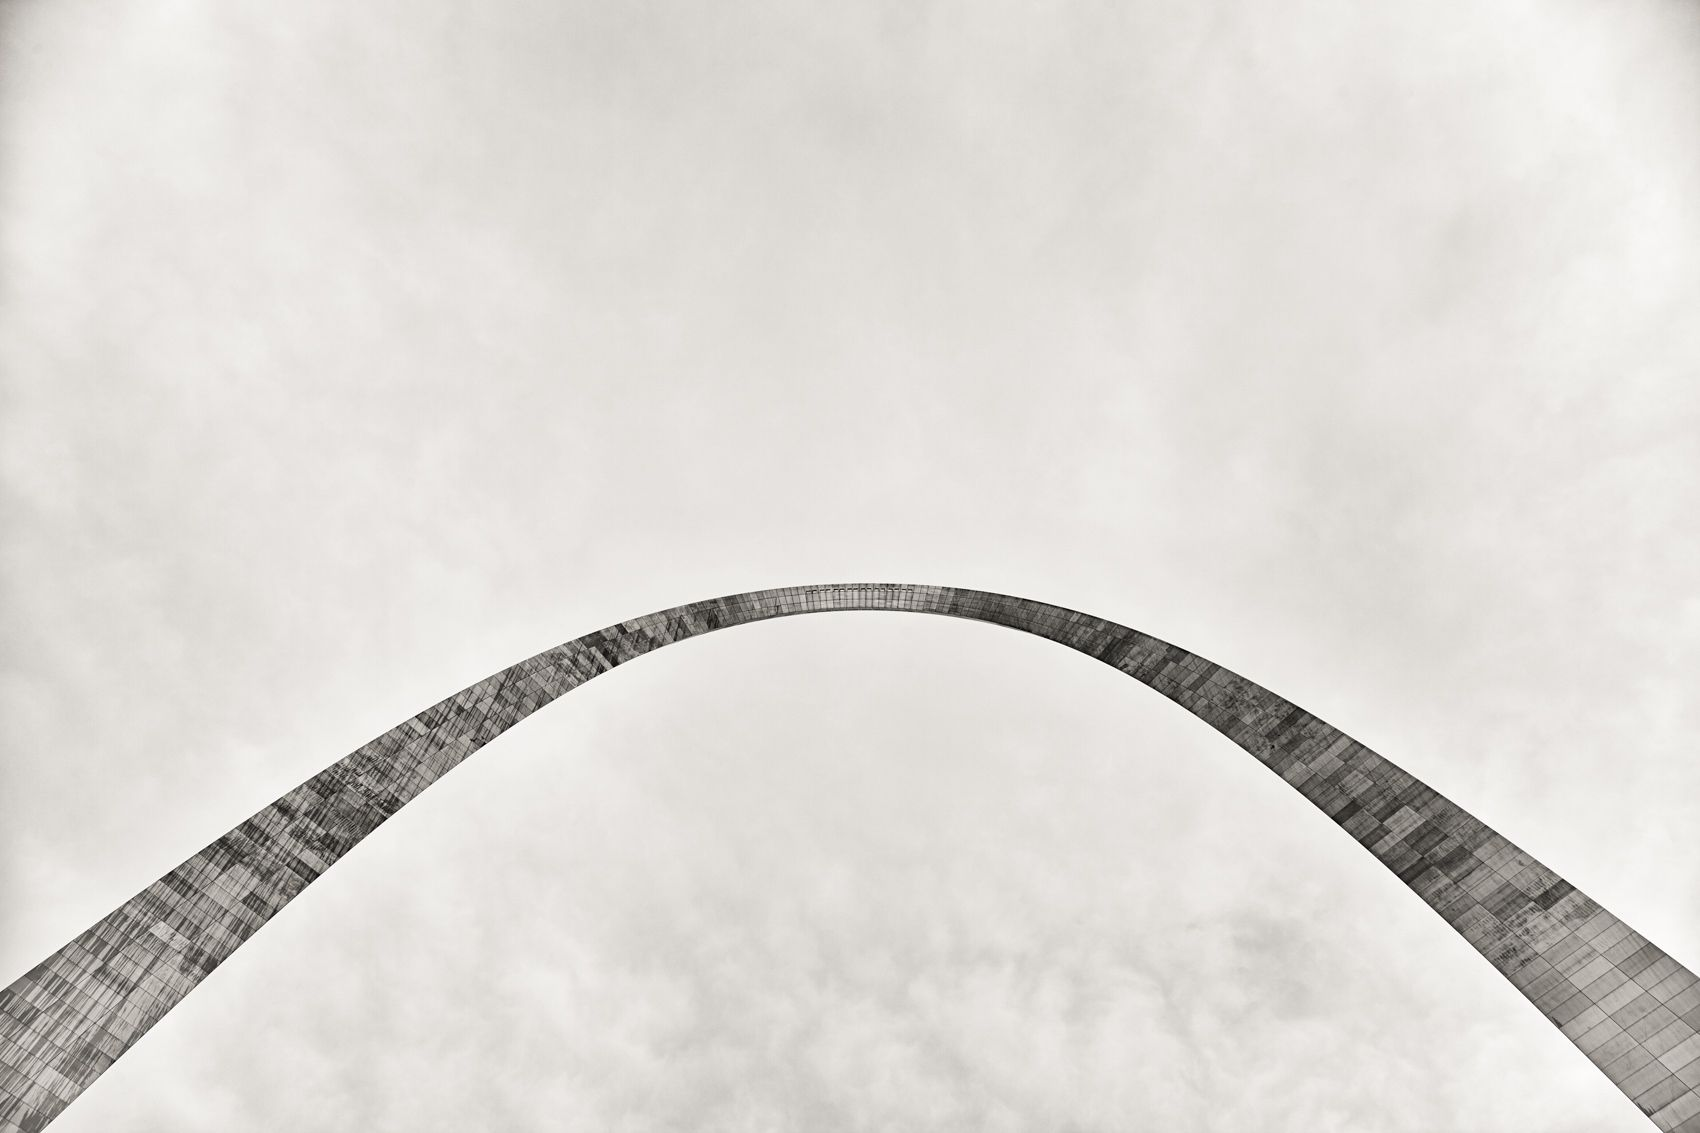 GATEWAY ARCH PROJECT